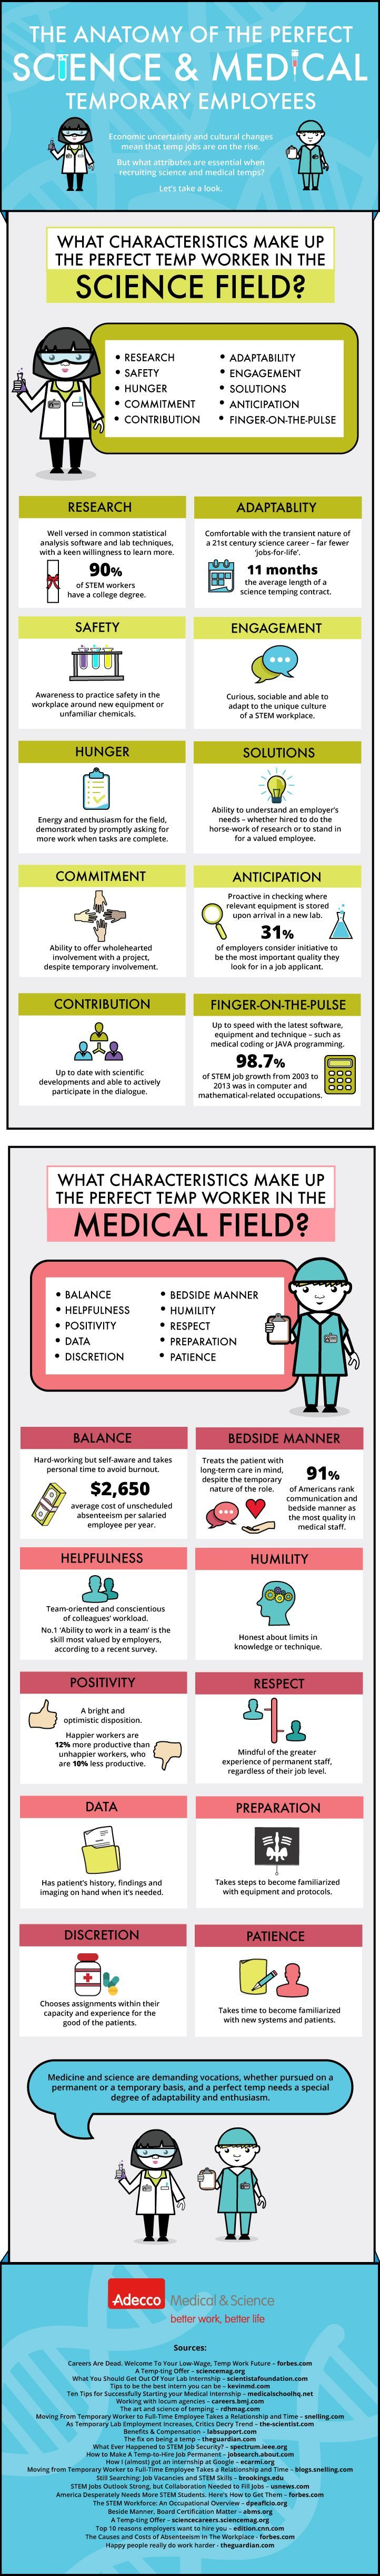 The Anatomy of the Perfect Science and Medical Temporary Employees ...